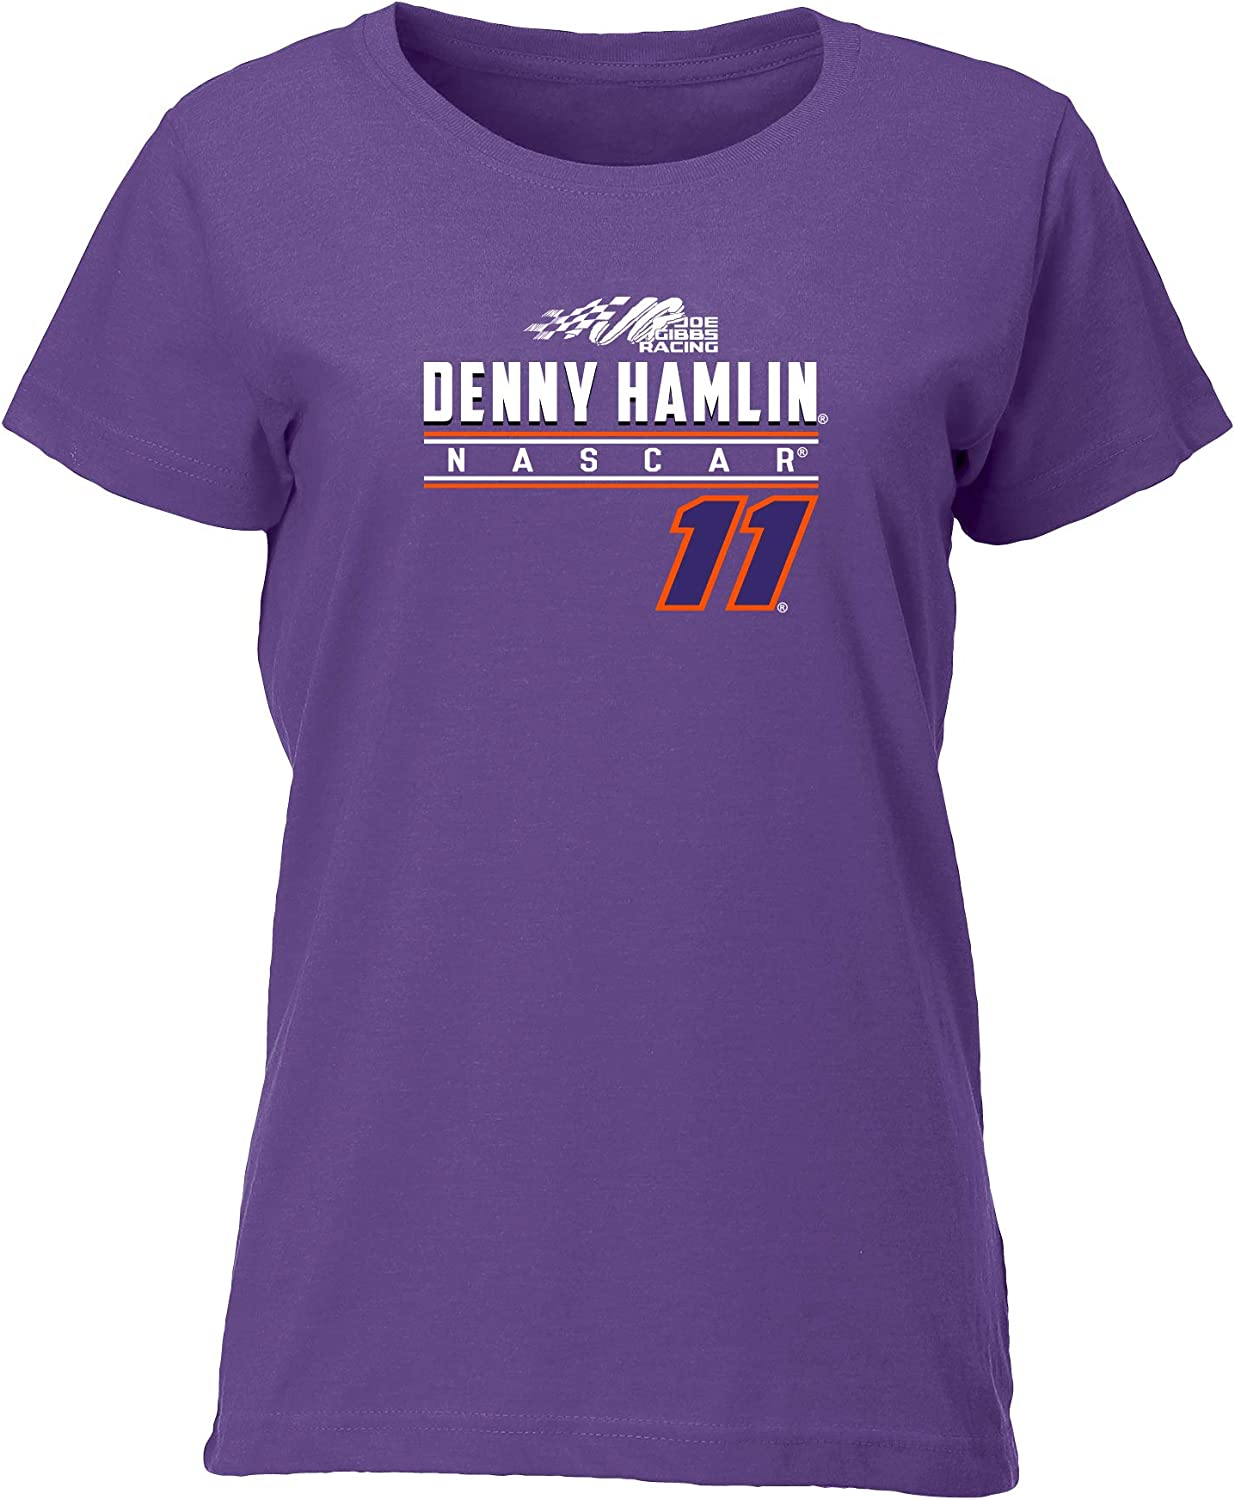 Ouray Sportswear NASCAR Womens W Vintage Blend Relaxed Fit S//S T